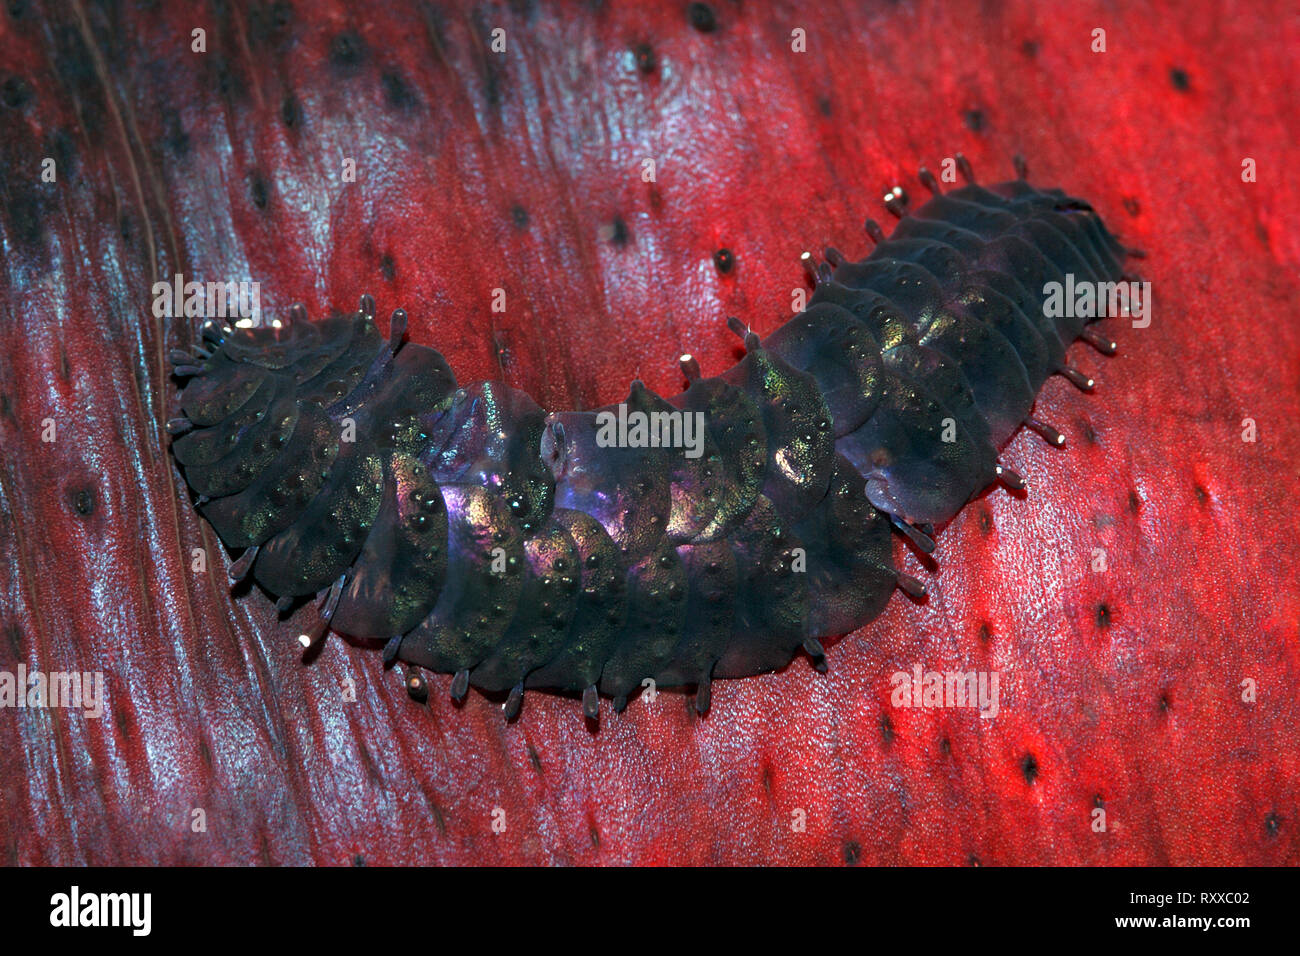 Sea Cucumber Scale Worm, Gastrolepidia clavigera, crawling on its host holothurian, the black sea cucumber, Holothuria atra. Uepi, Solomon Islands. So - Stock Image